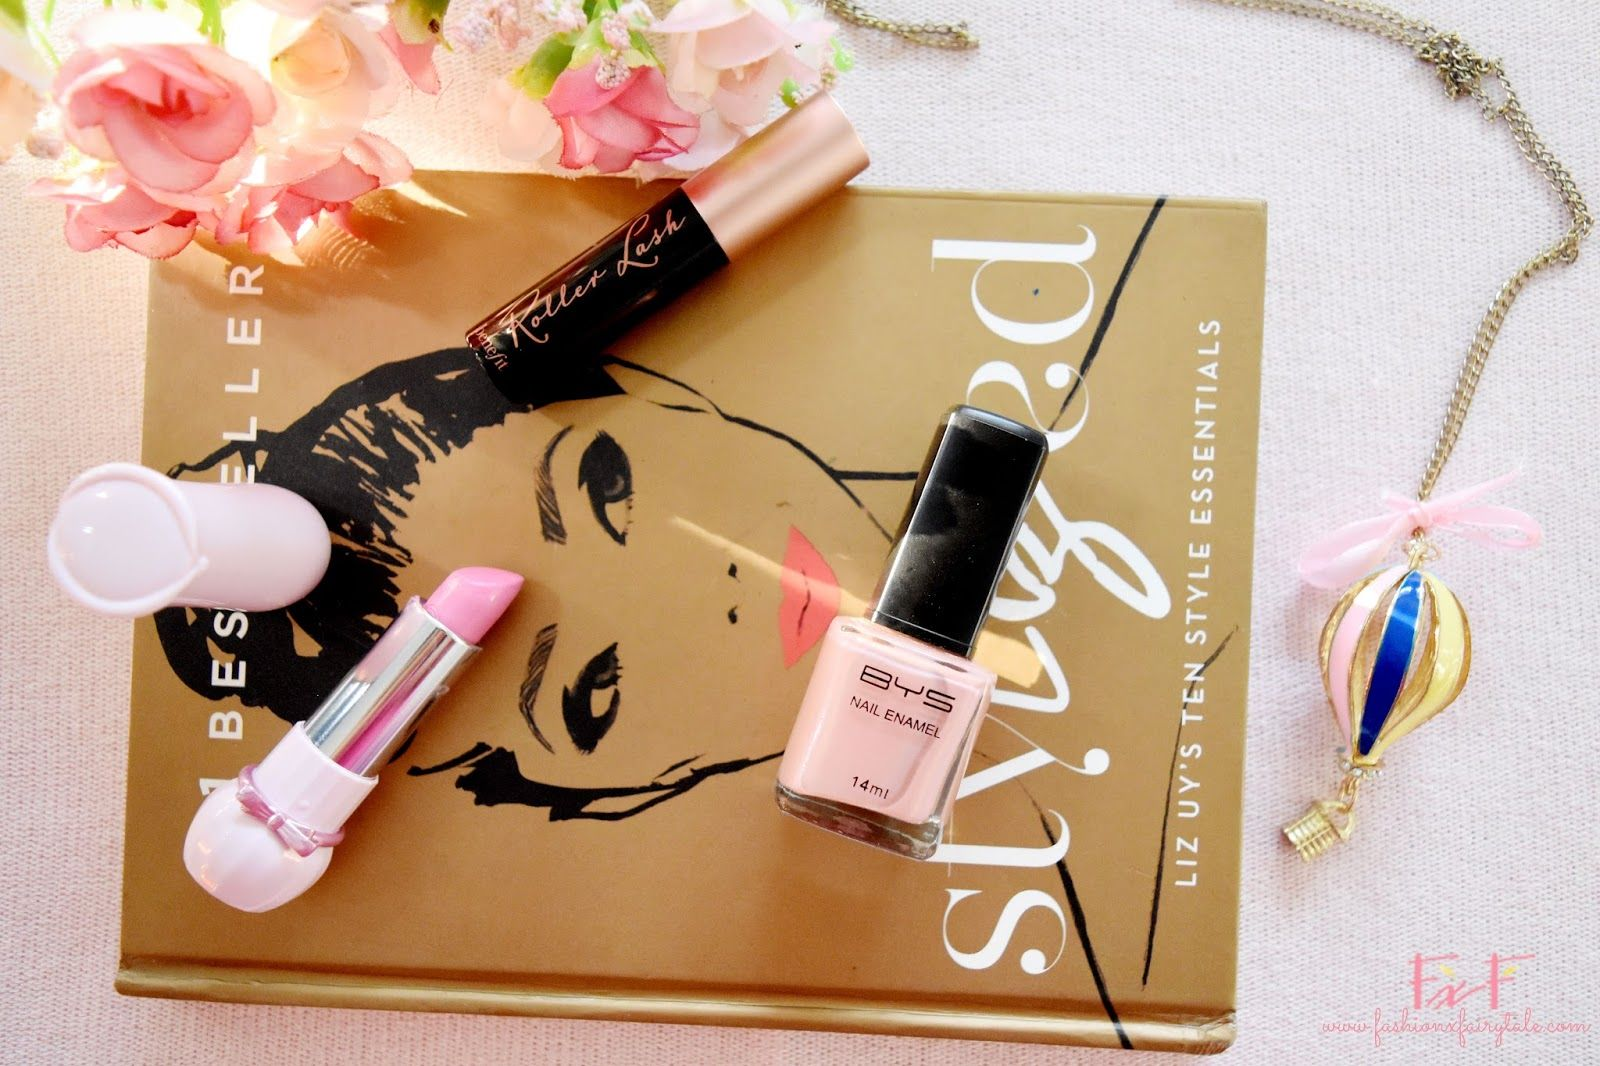 Baby Bloom | On My Nails - Fashion Fairytale | A Tale of Fashion & Beauty Blog